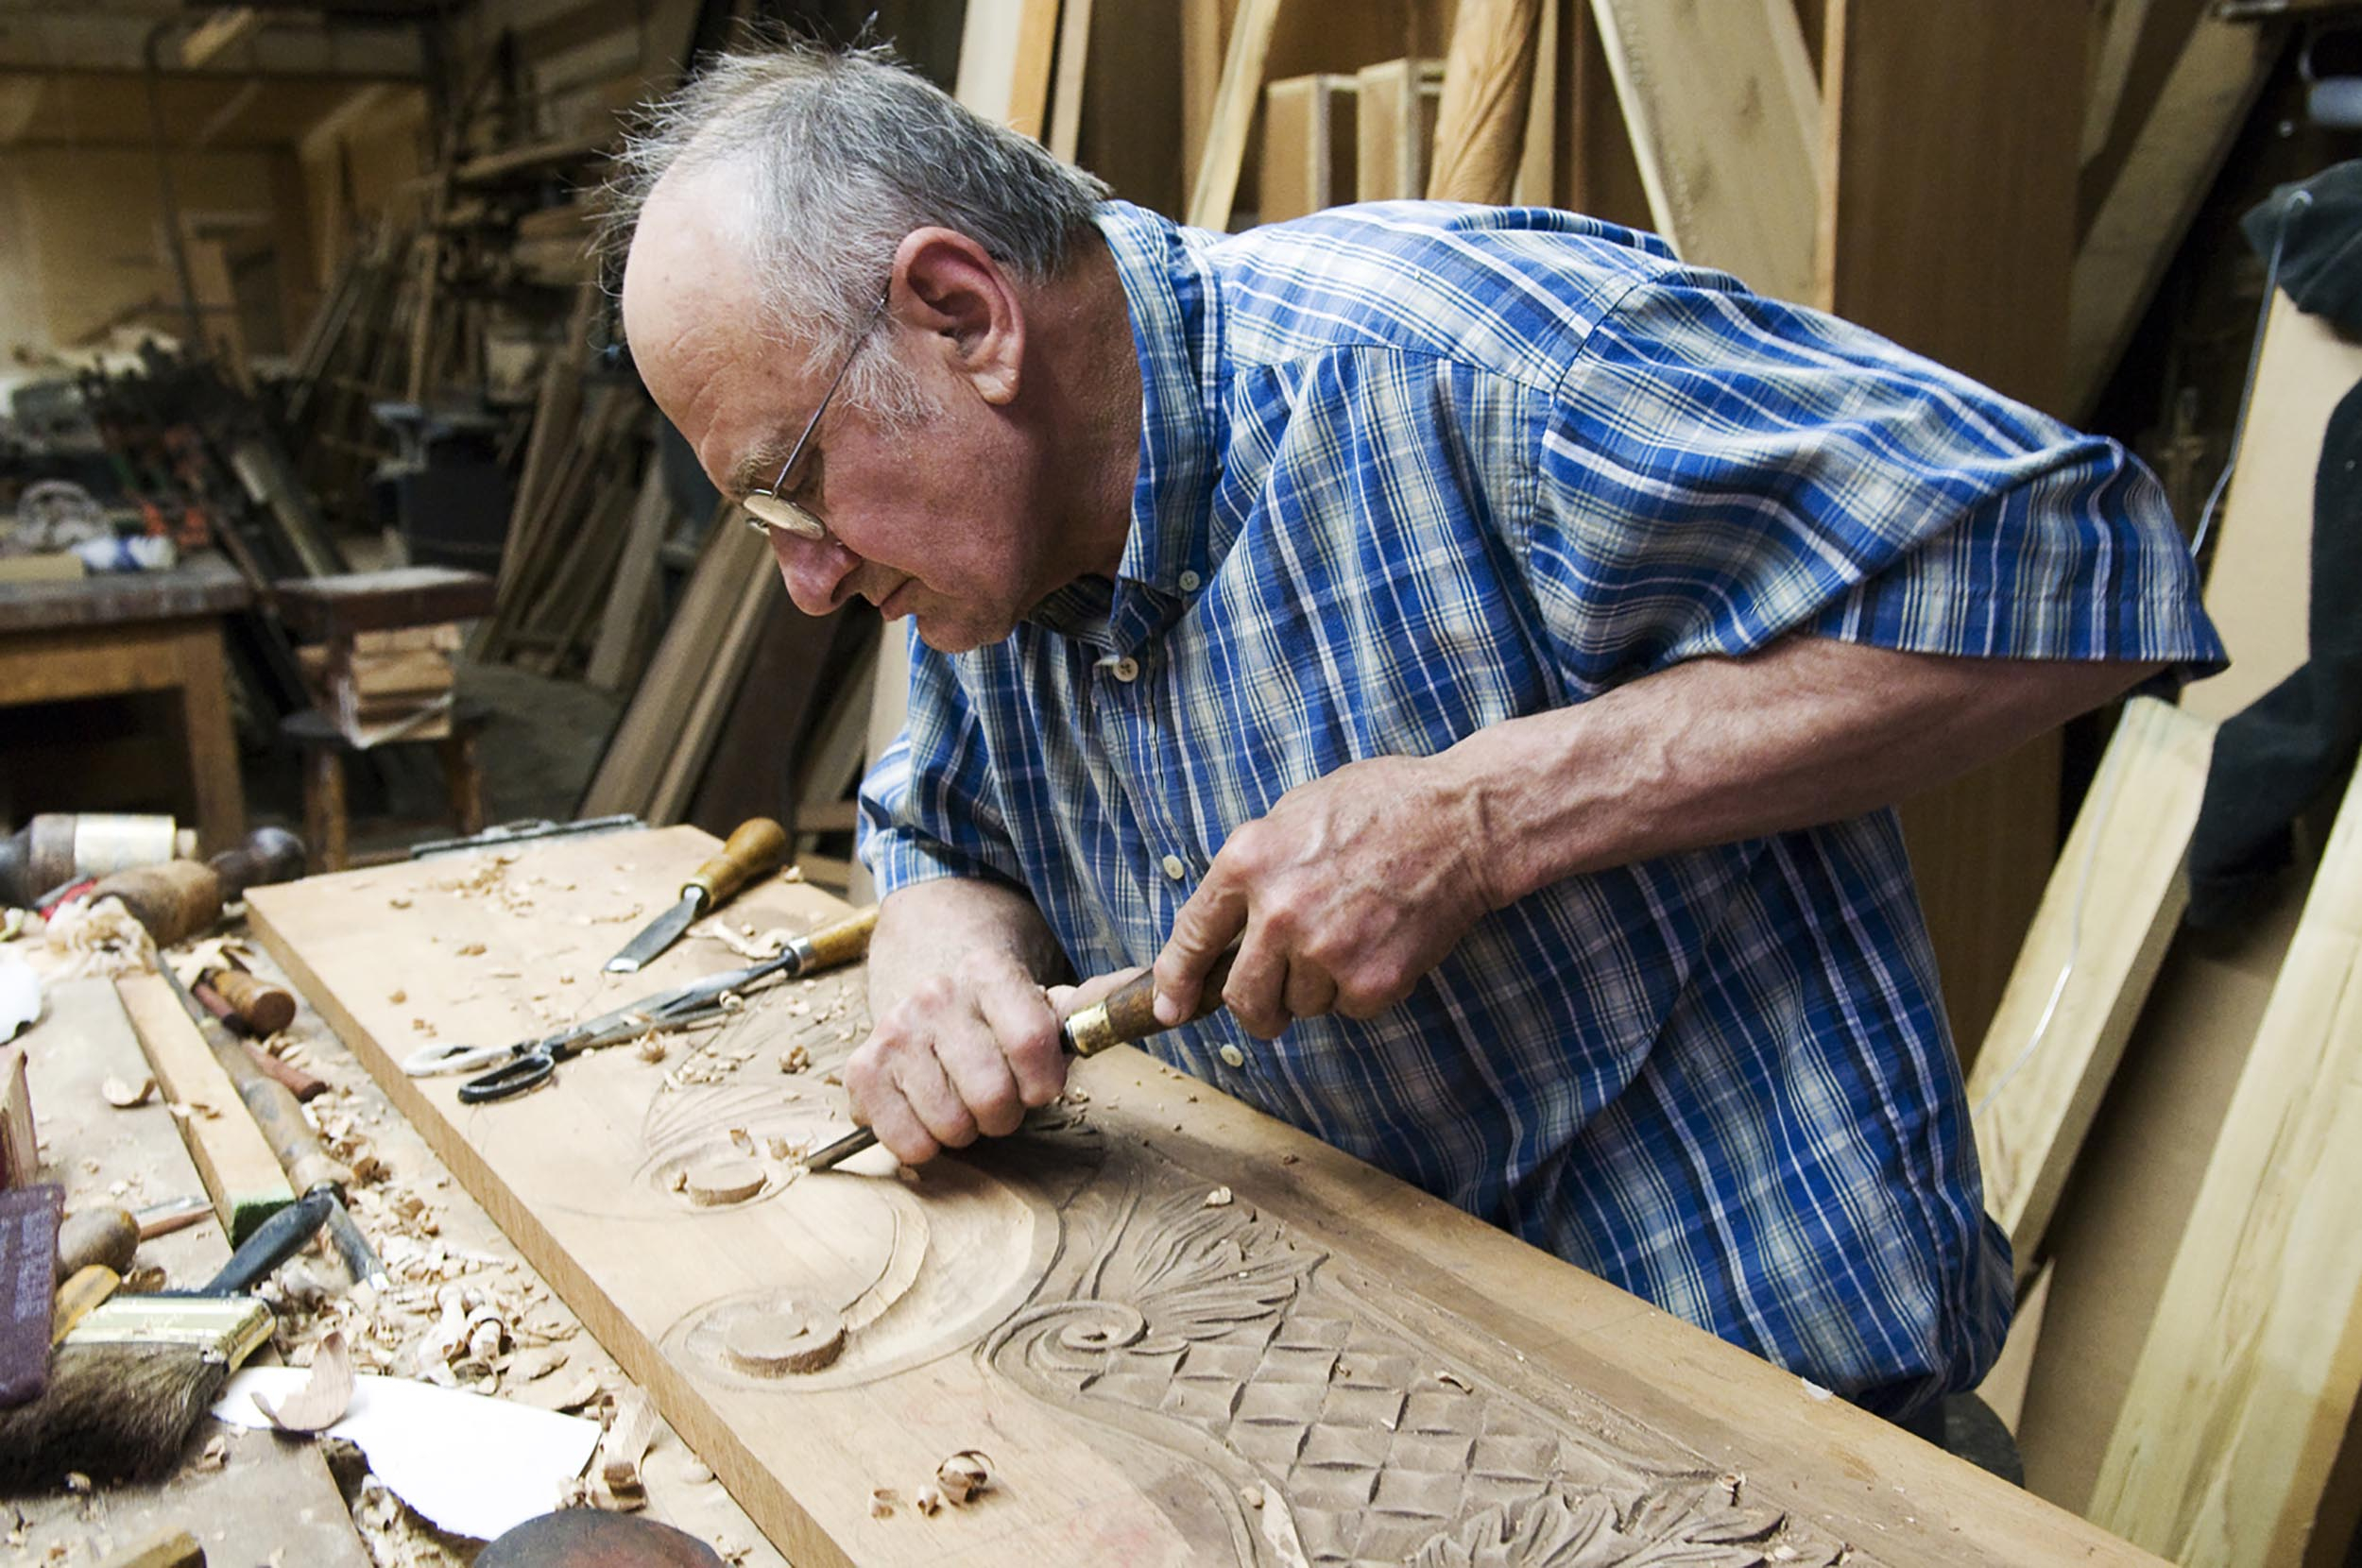 Joe Mazurek carves a headboard out of a peice of maghony at his shop in Camden, S.C. He uses 18th century construction techniques to build furniture.